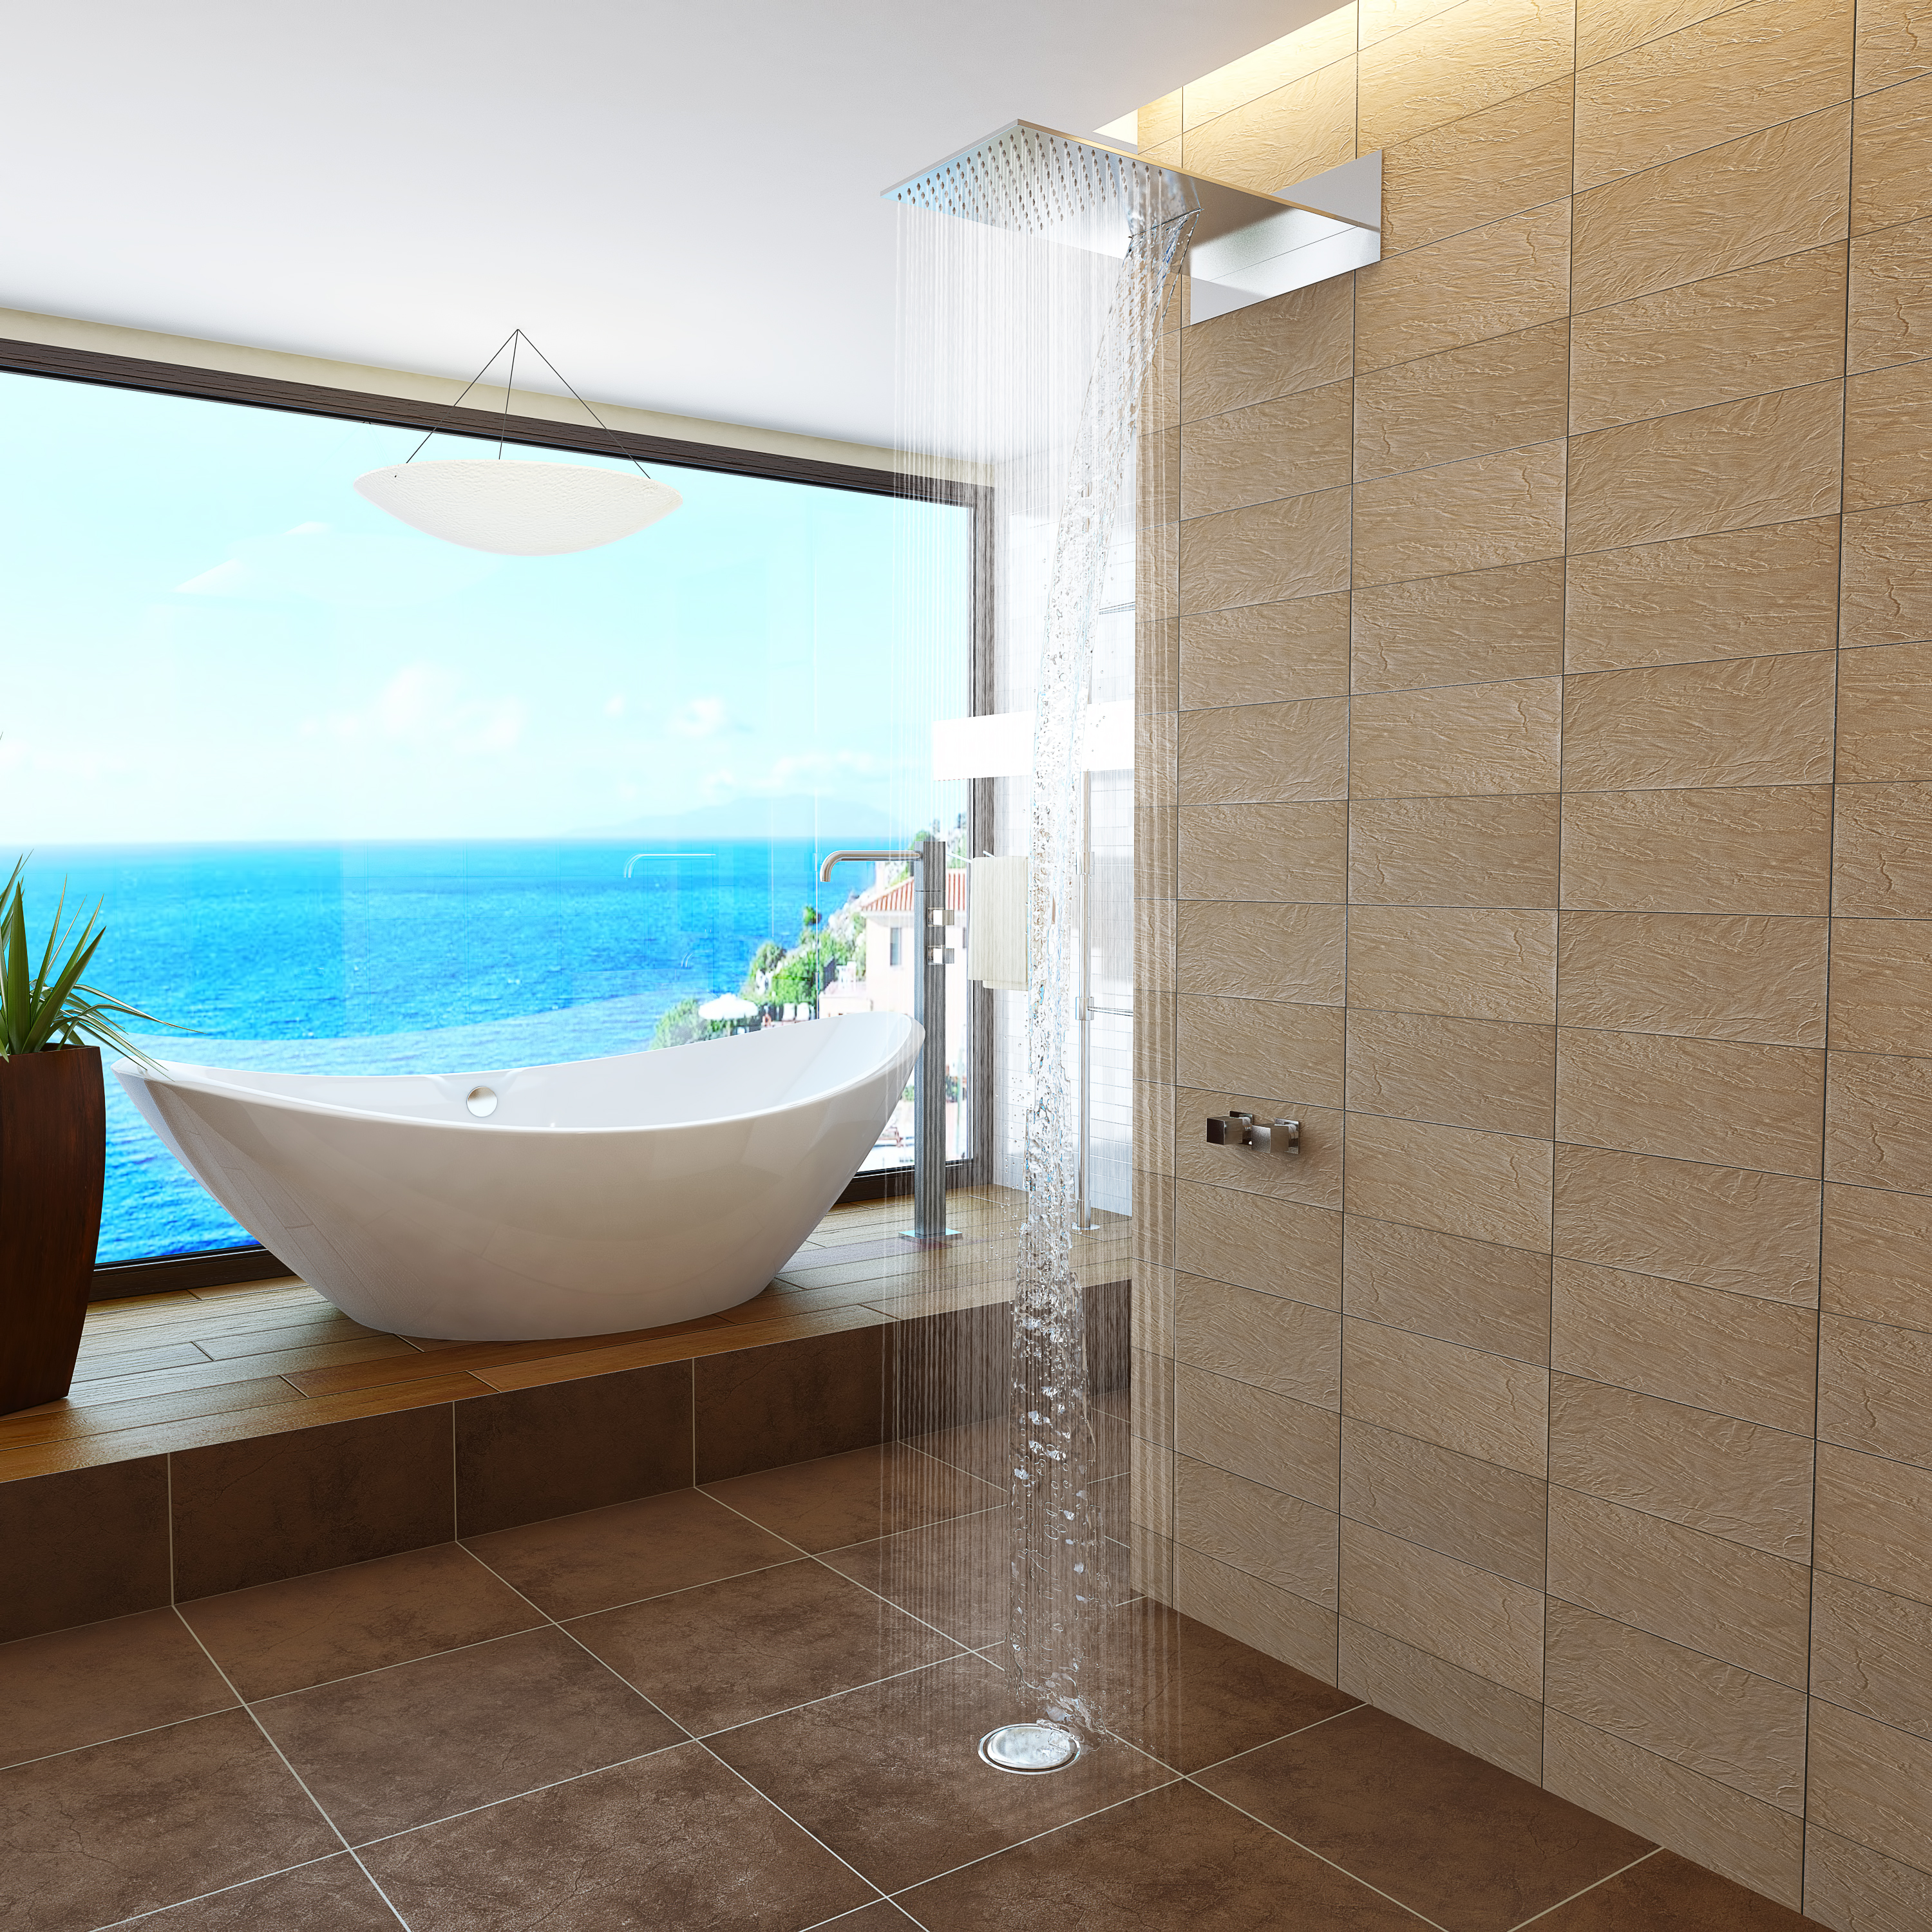 project gallery design waterfall flooring waite or your for inc bathtub next find inspiration park tile